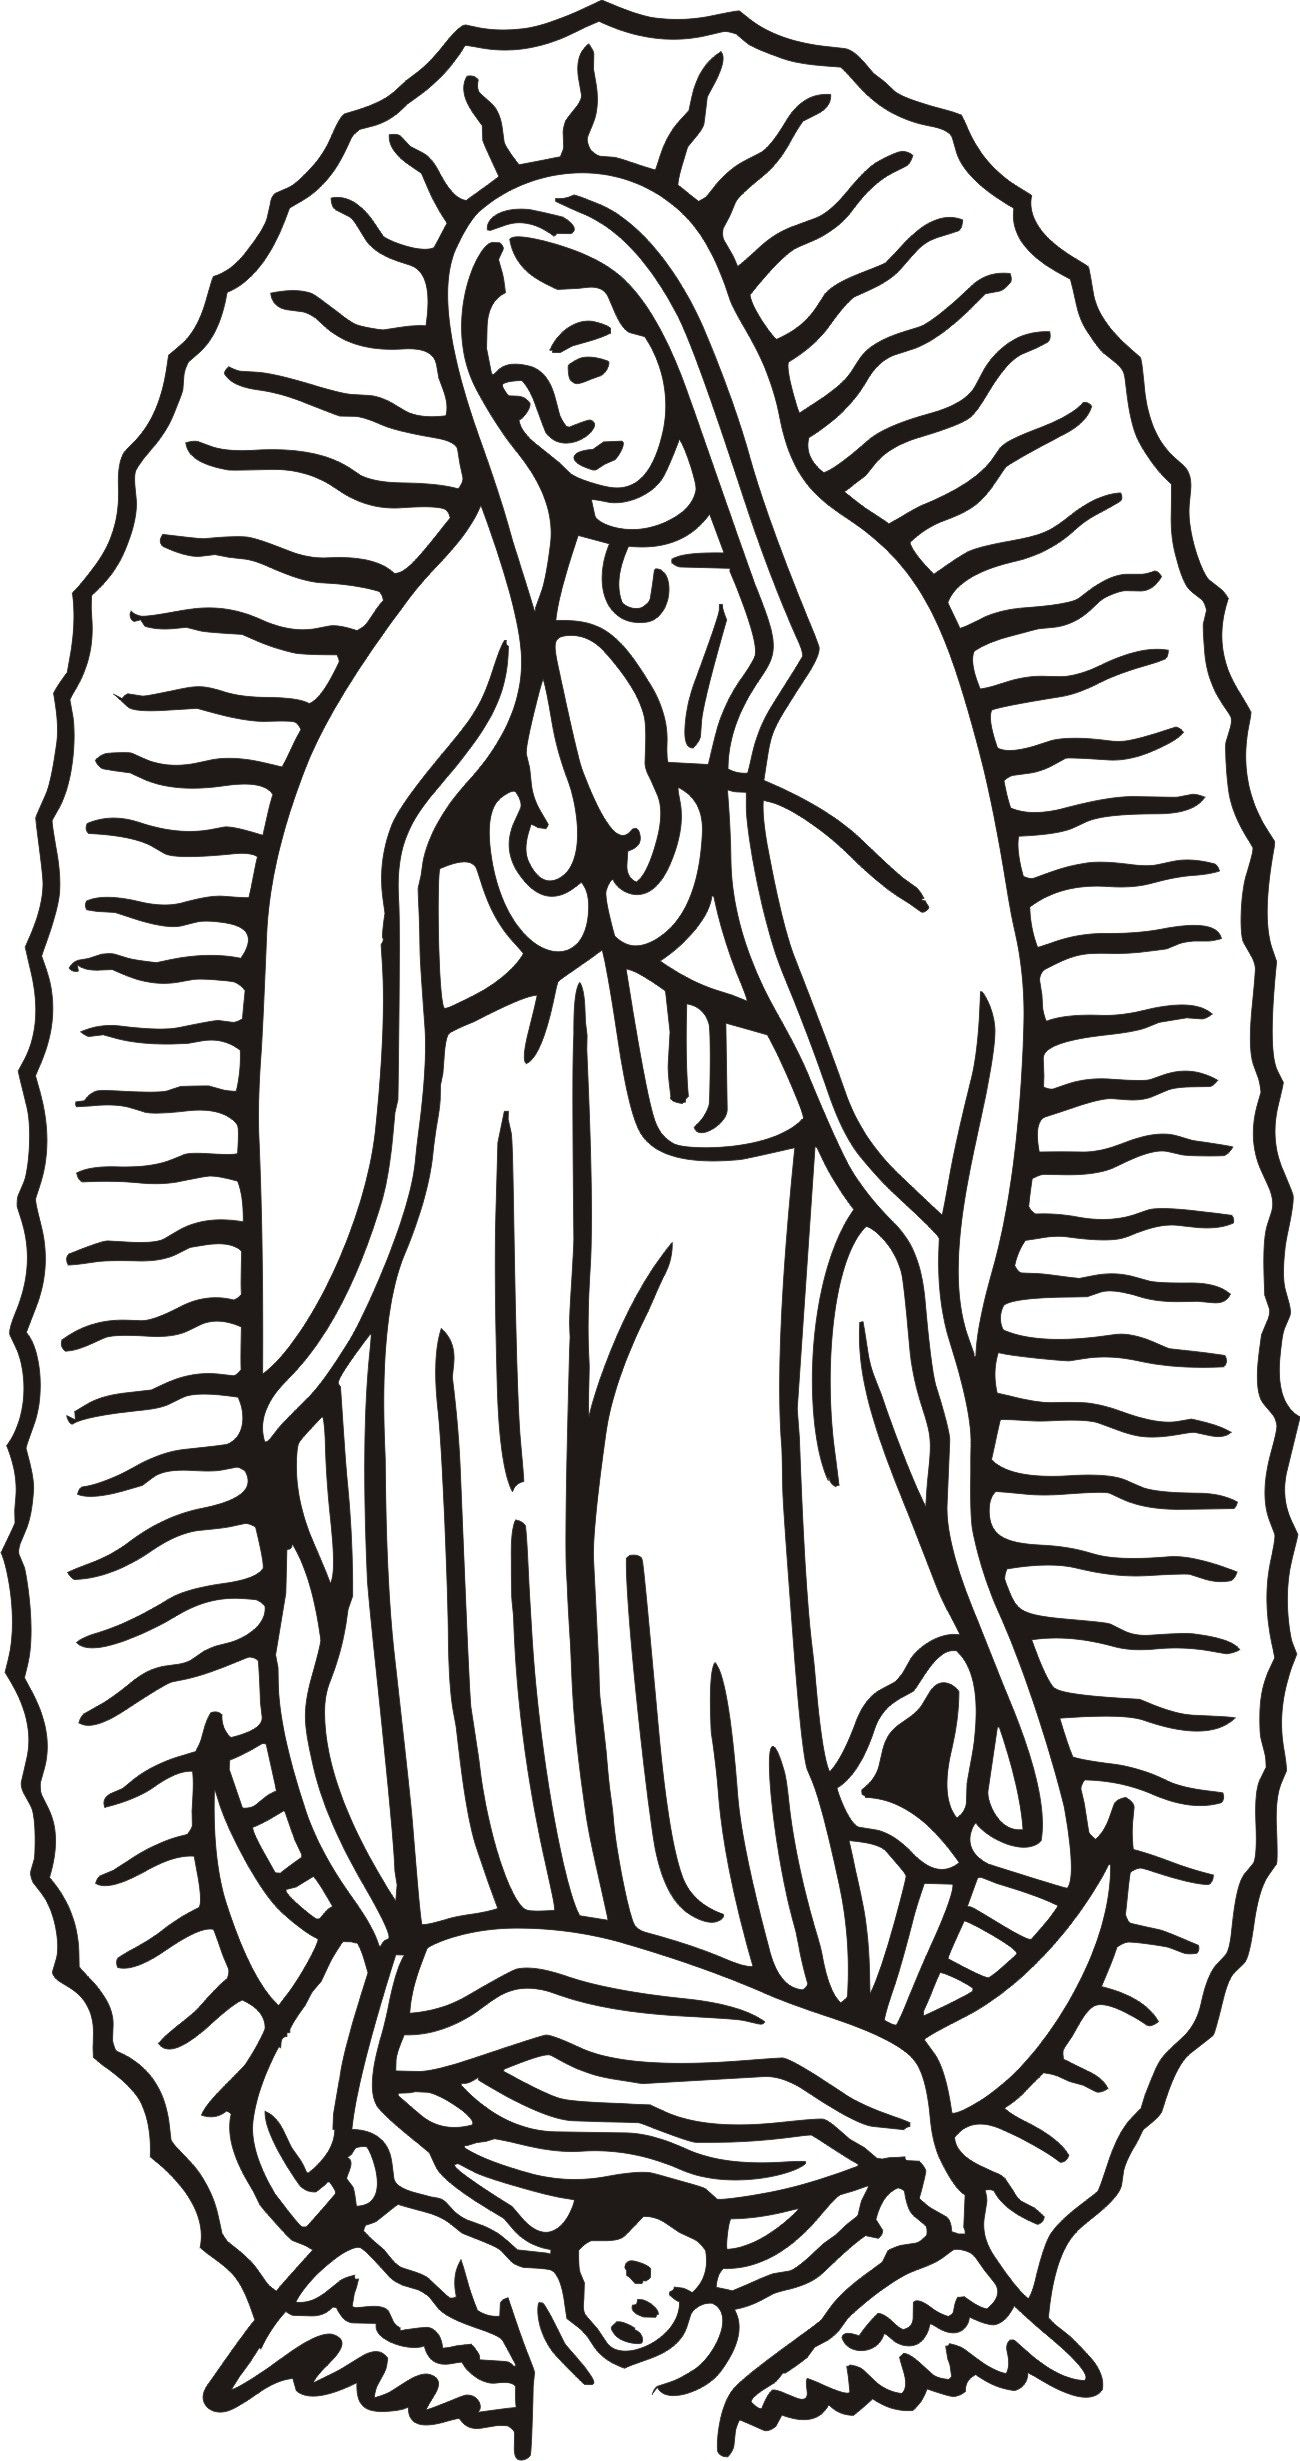 Our Lady Of Guadalupe Vector